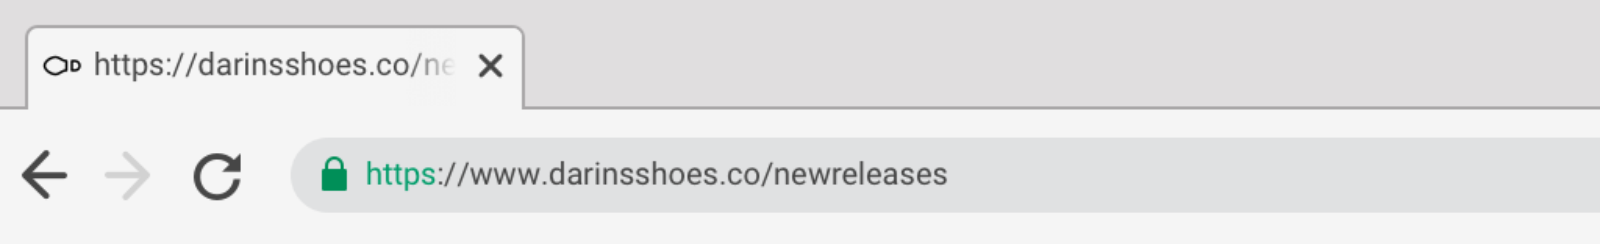 Browser interface displaying one tab labelled with a long url